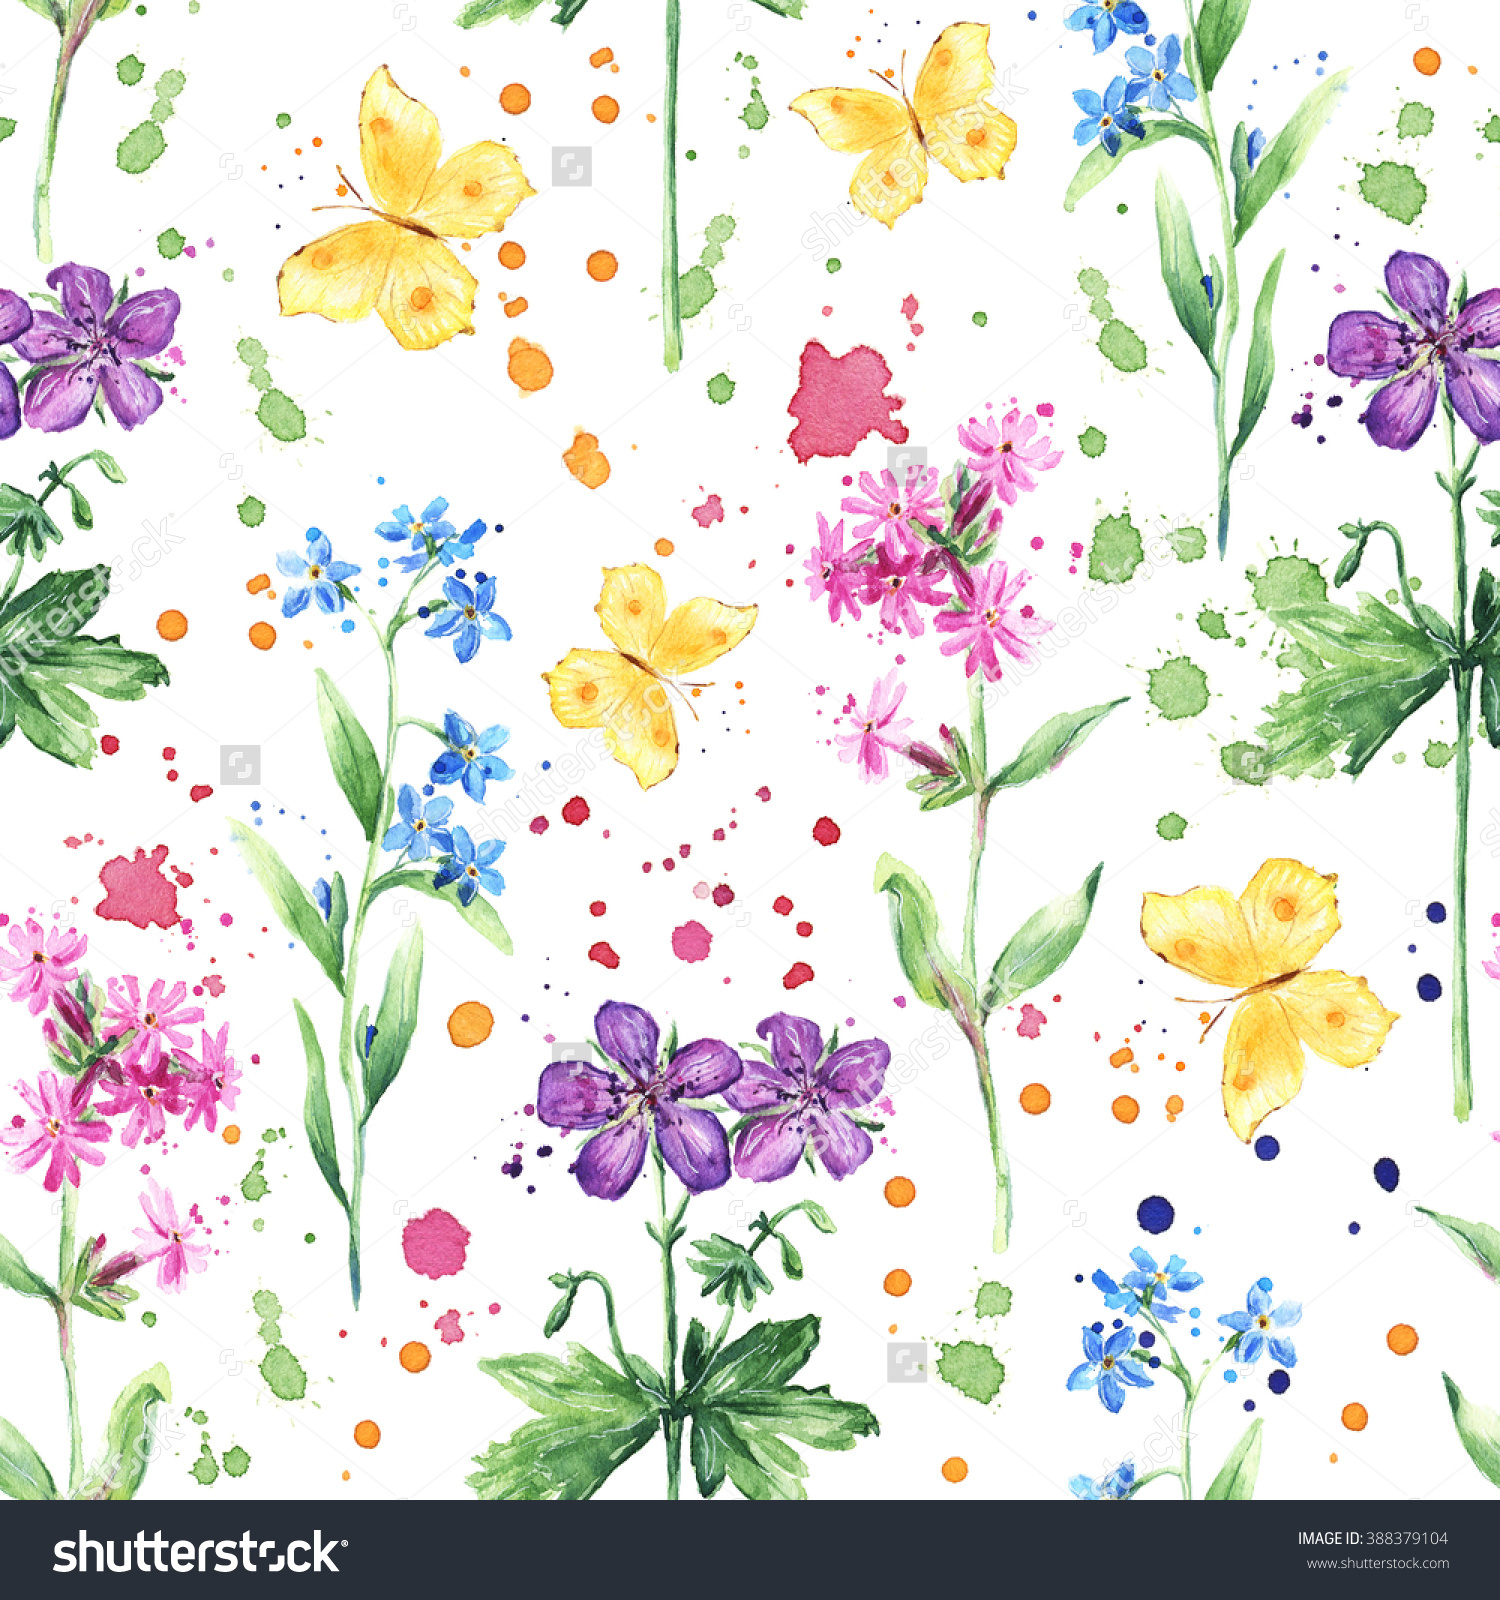 Seamless Floral Pattern With Colorful Wild Flowers, Meadow Flowers.